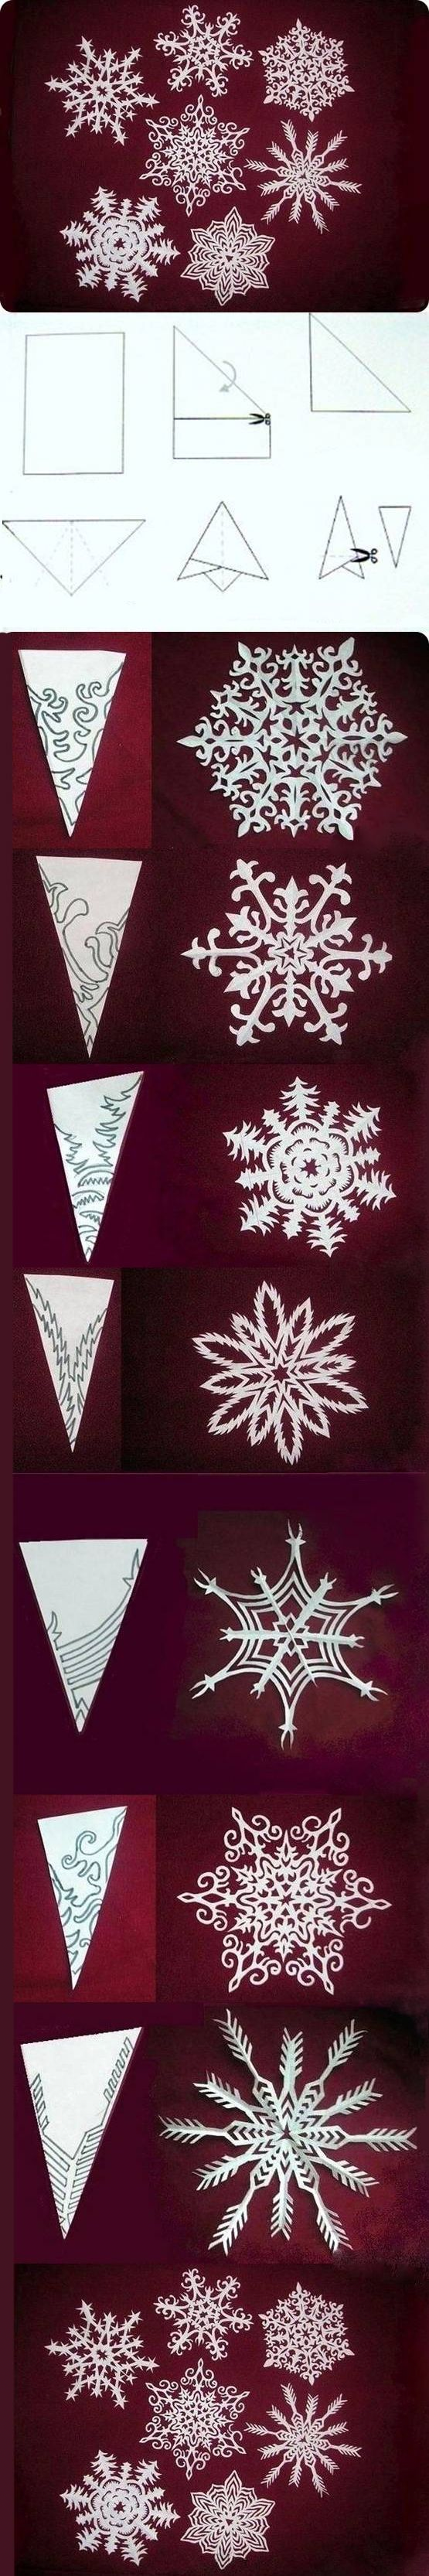 Snowflake templates love these so pretty want need for Diy snowflakes paper pattern